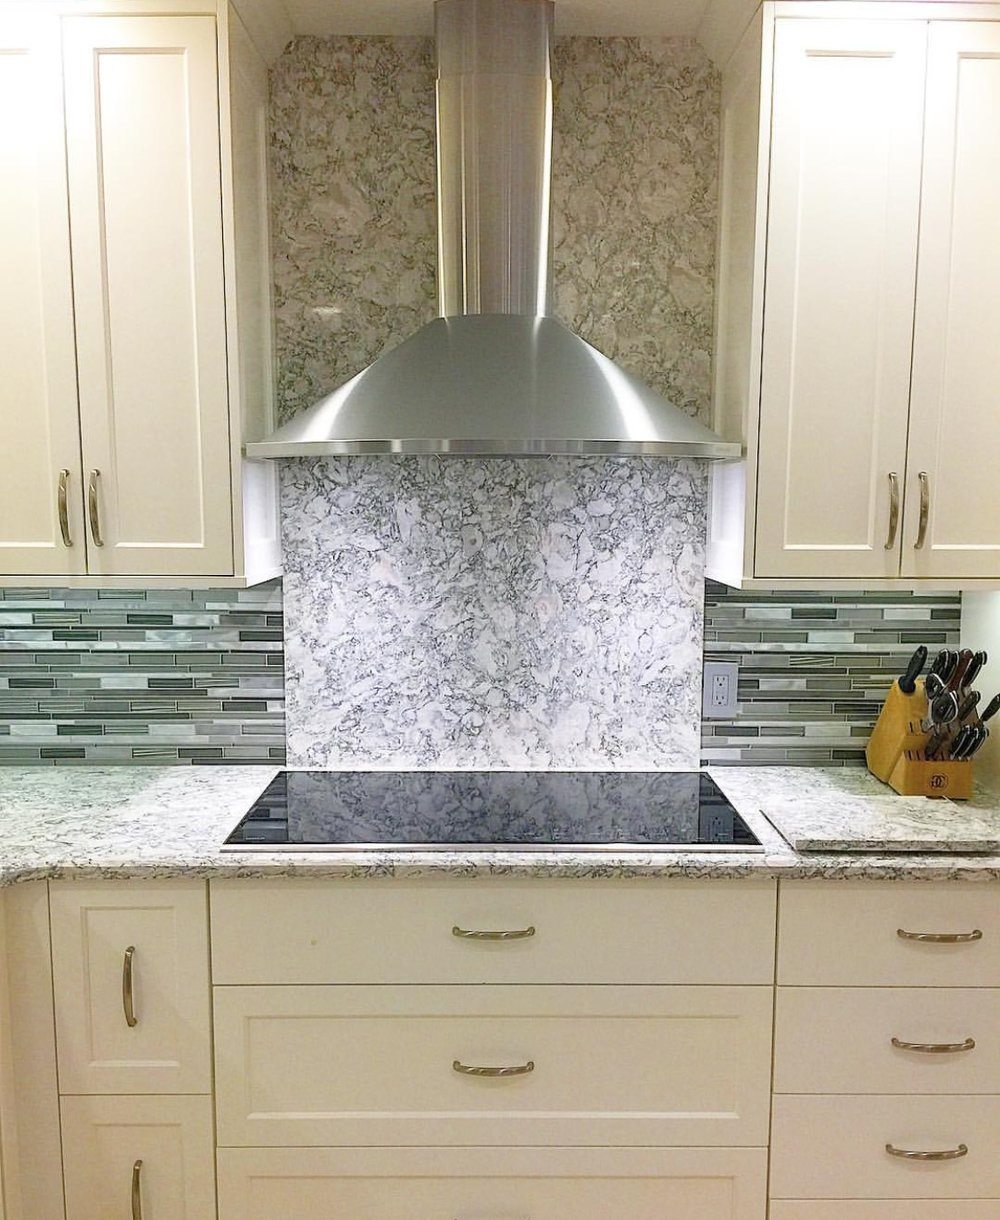 Cambria berwyn quartz countertops and backsplash with induction range cooktop and stainless steel range door. frameless white shaker cabinets